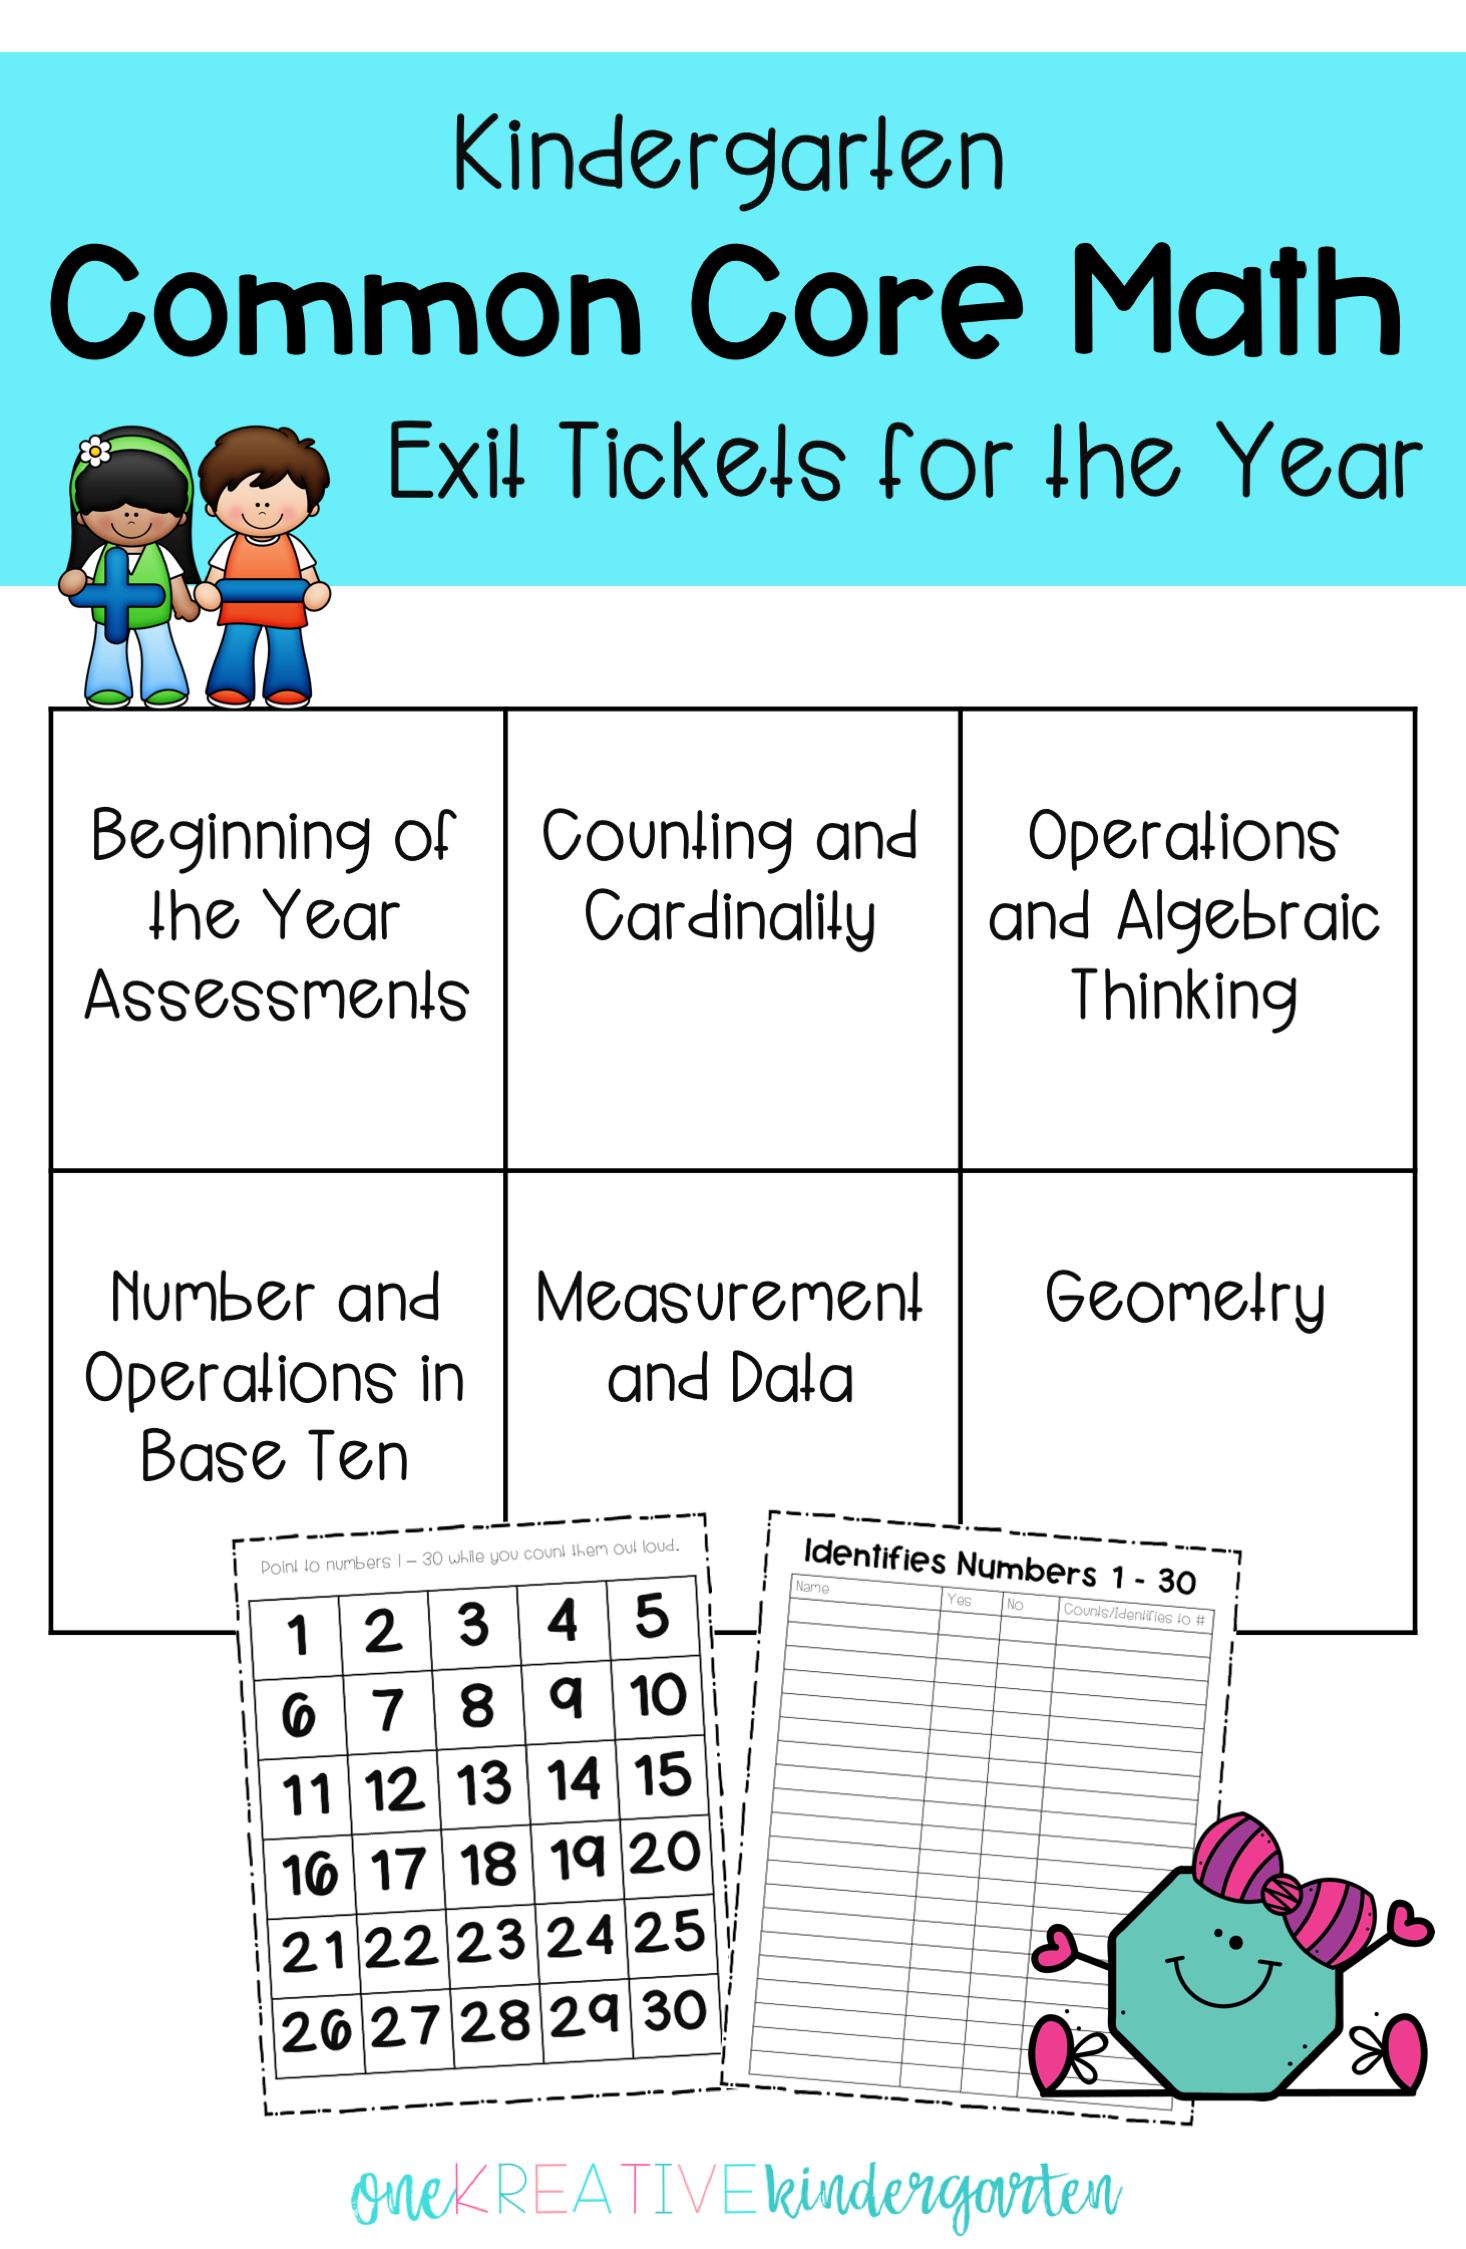 Kindergarten Common Core Math Assessments For The Year